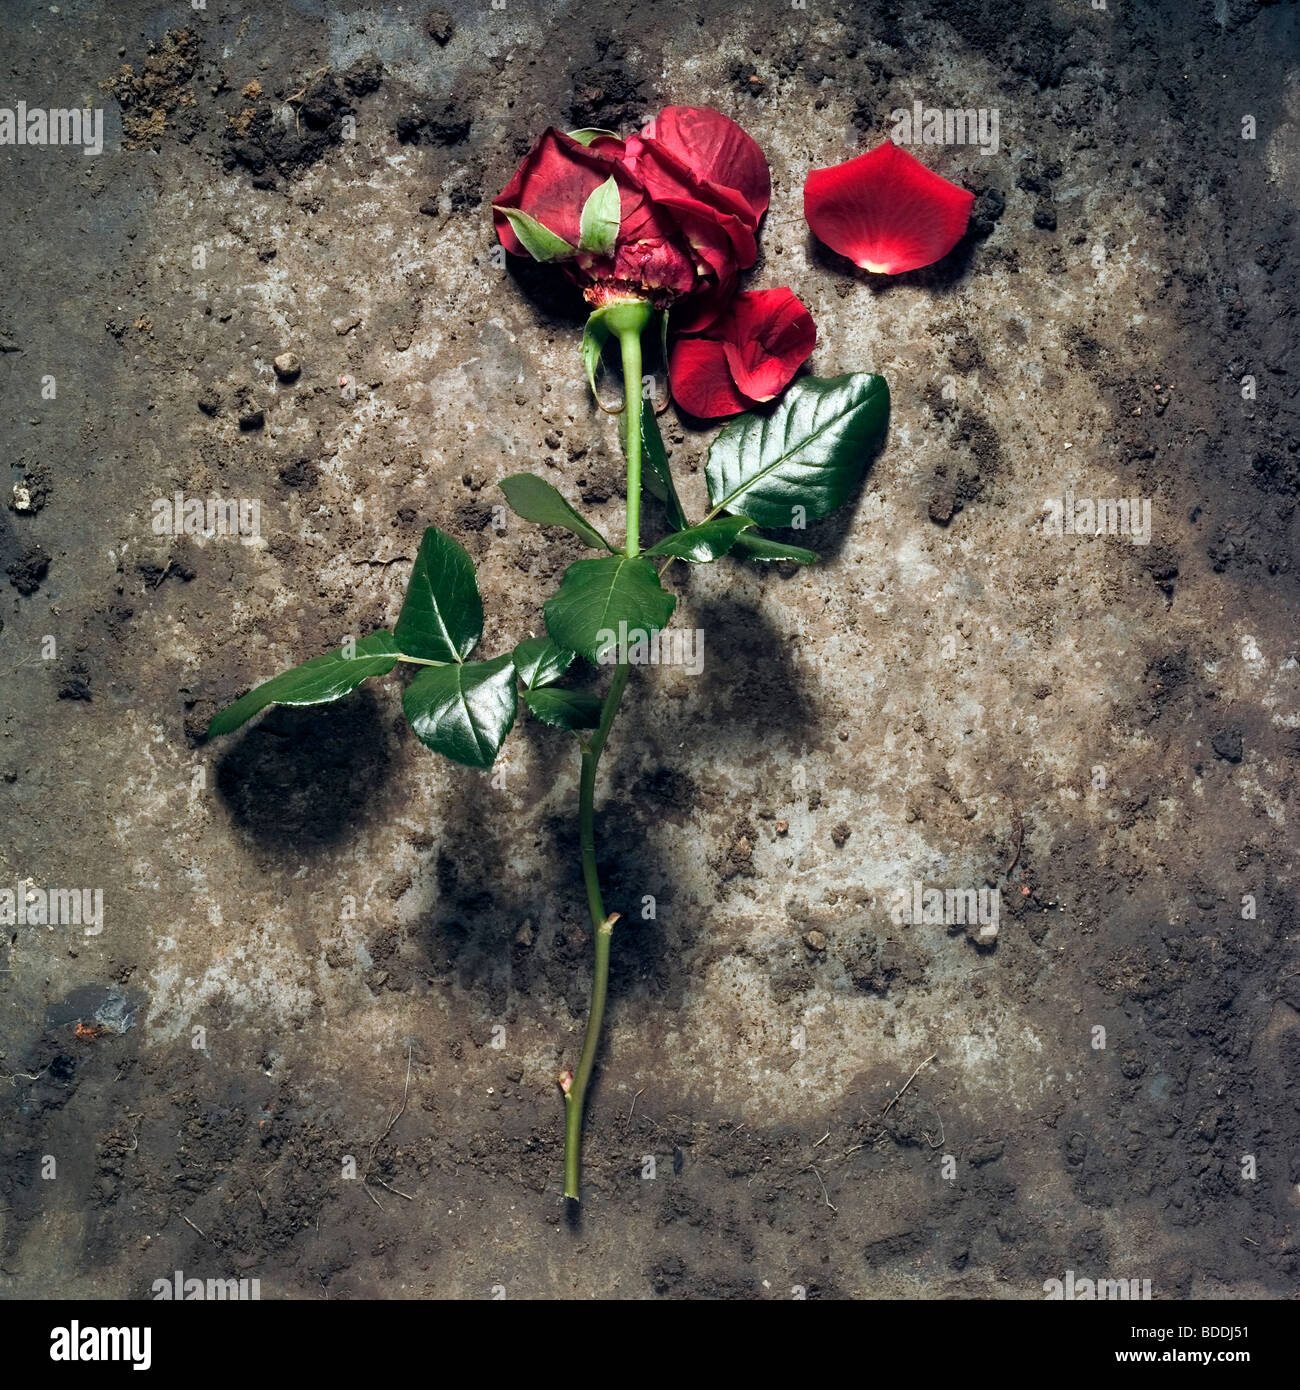 Red rose discarded - Stock Image